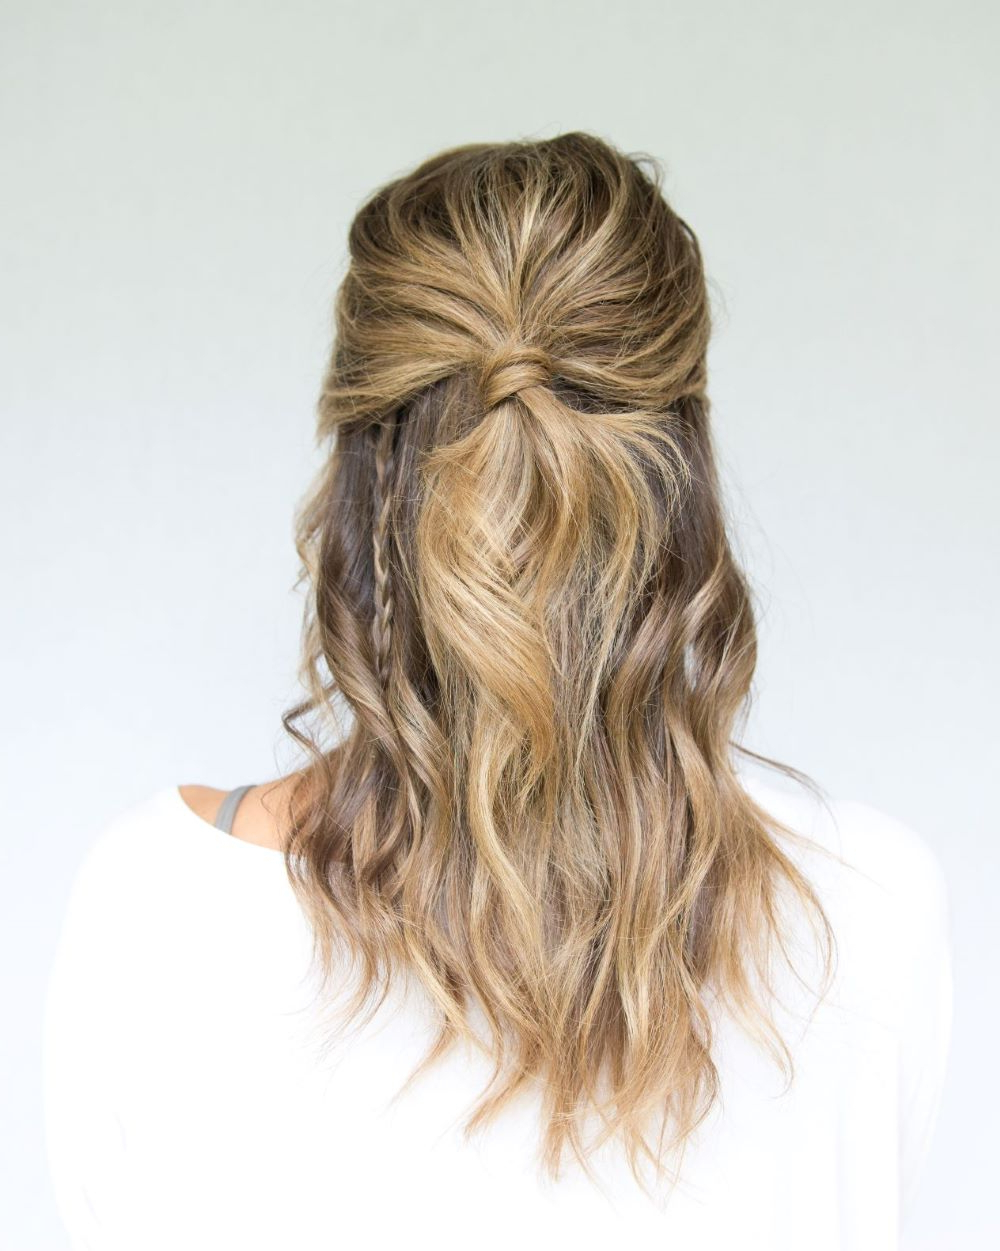 Go Boho This With Half Up Half Down Hairstyle – Lulus Intended For 2020 Boho Half Braid Hairstyles (View 8 of 20)